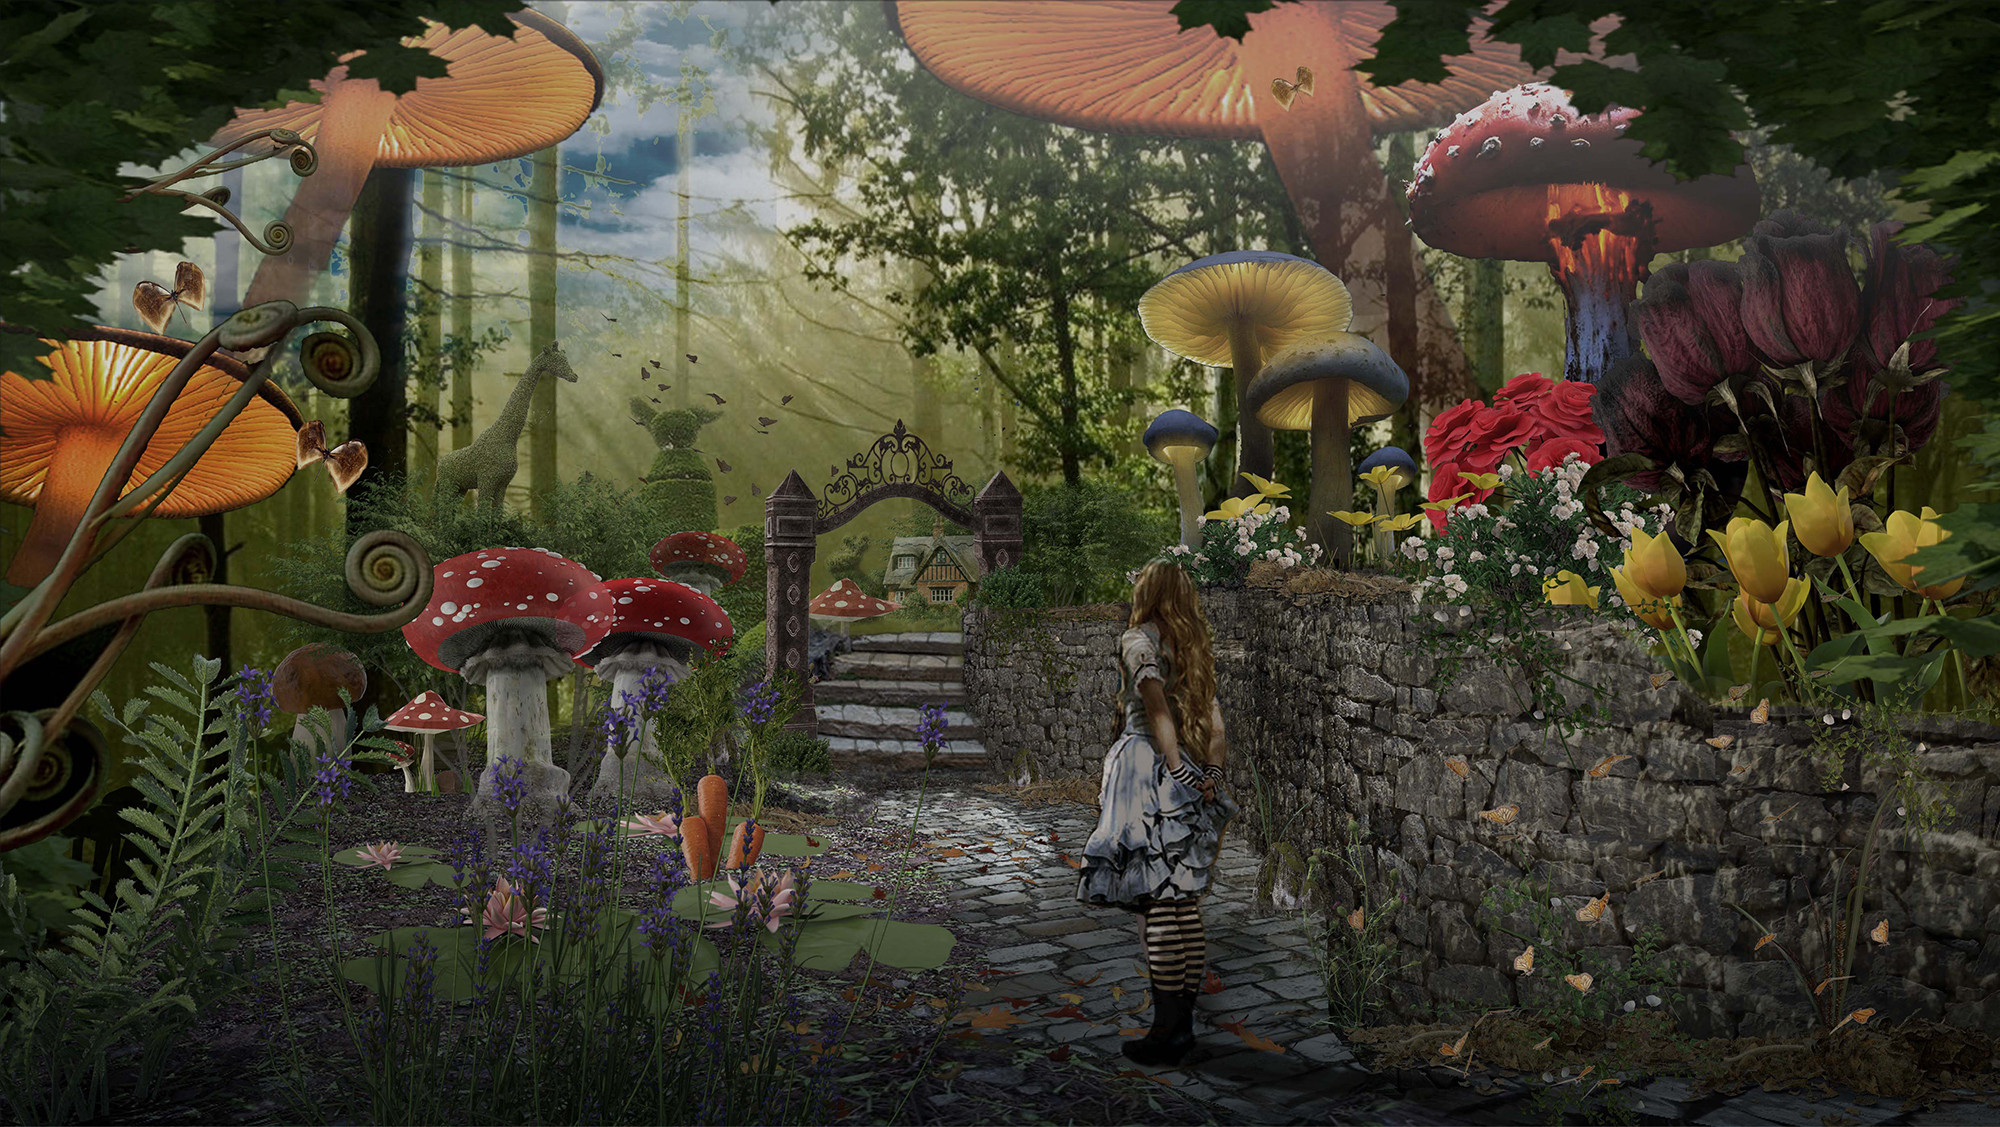 Wonderland Concept for  ABC's Once Upon a Time Season 7 - 3D Geo / Rendering Chad Harms